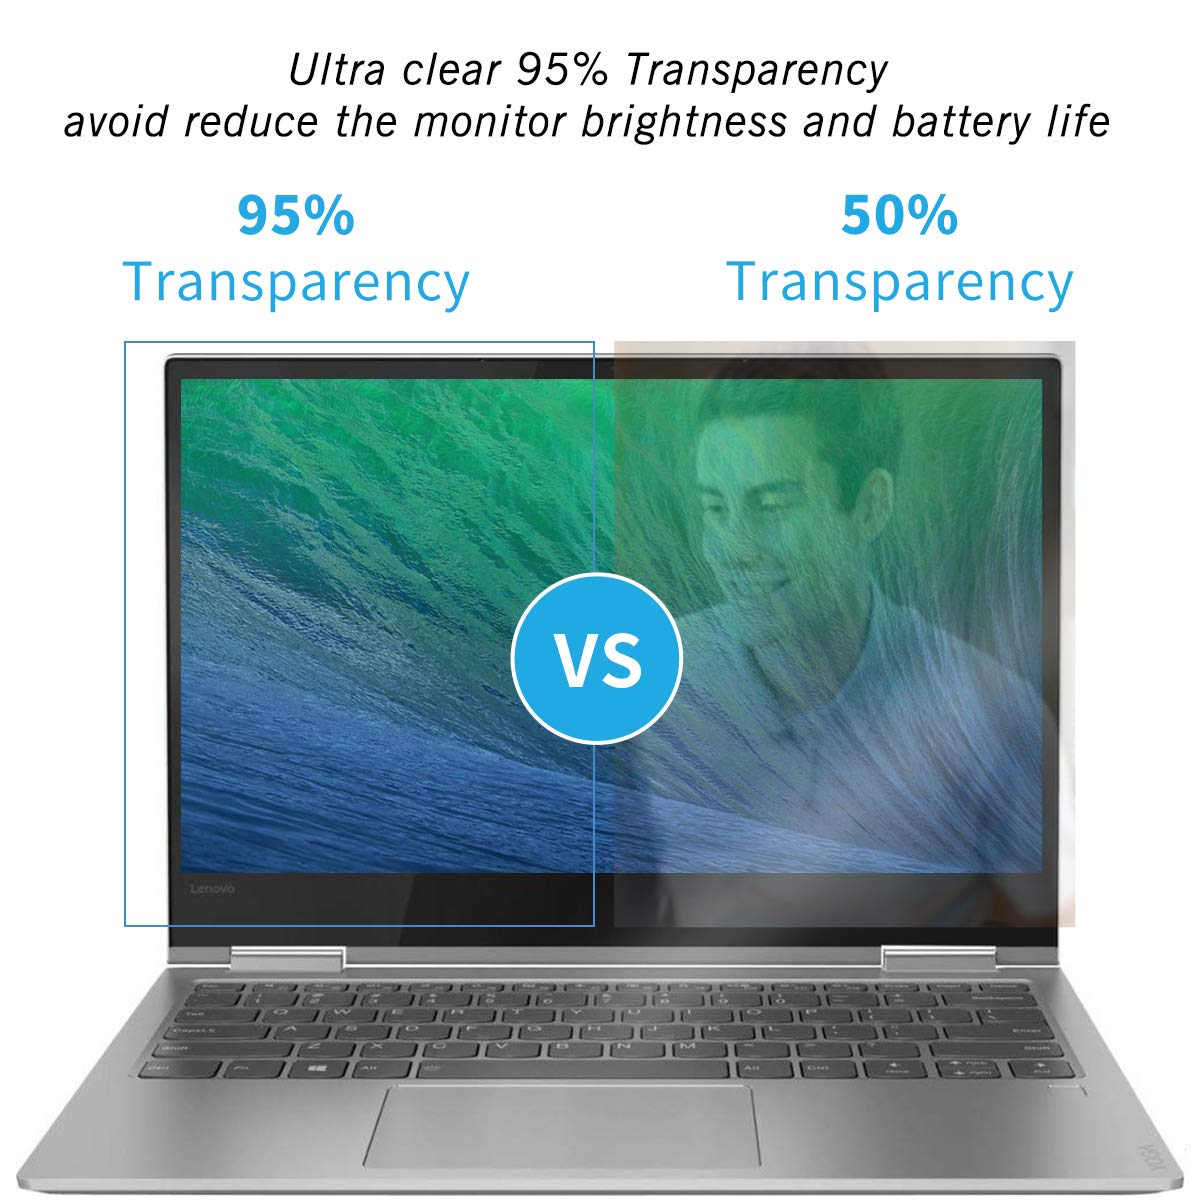 """Anti Glare Screen Protector Eye Protection Anti Scratch Screen Protector for 15.6/"""" Lenovo Yoga 730 2-in-1 Laptop with Webcam Cover 15.6/"""" Lenovo Yoga 730 Anti Blue Light Screen Filter"""